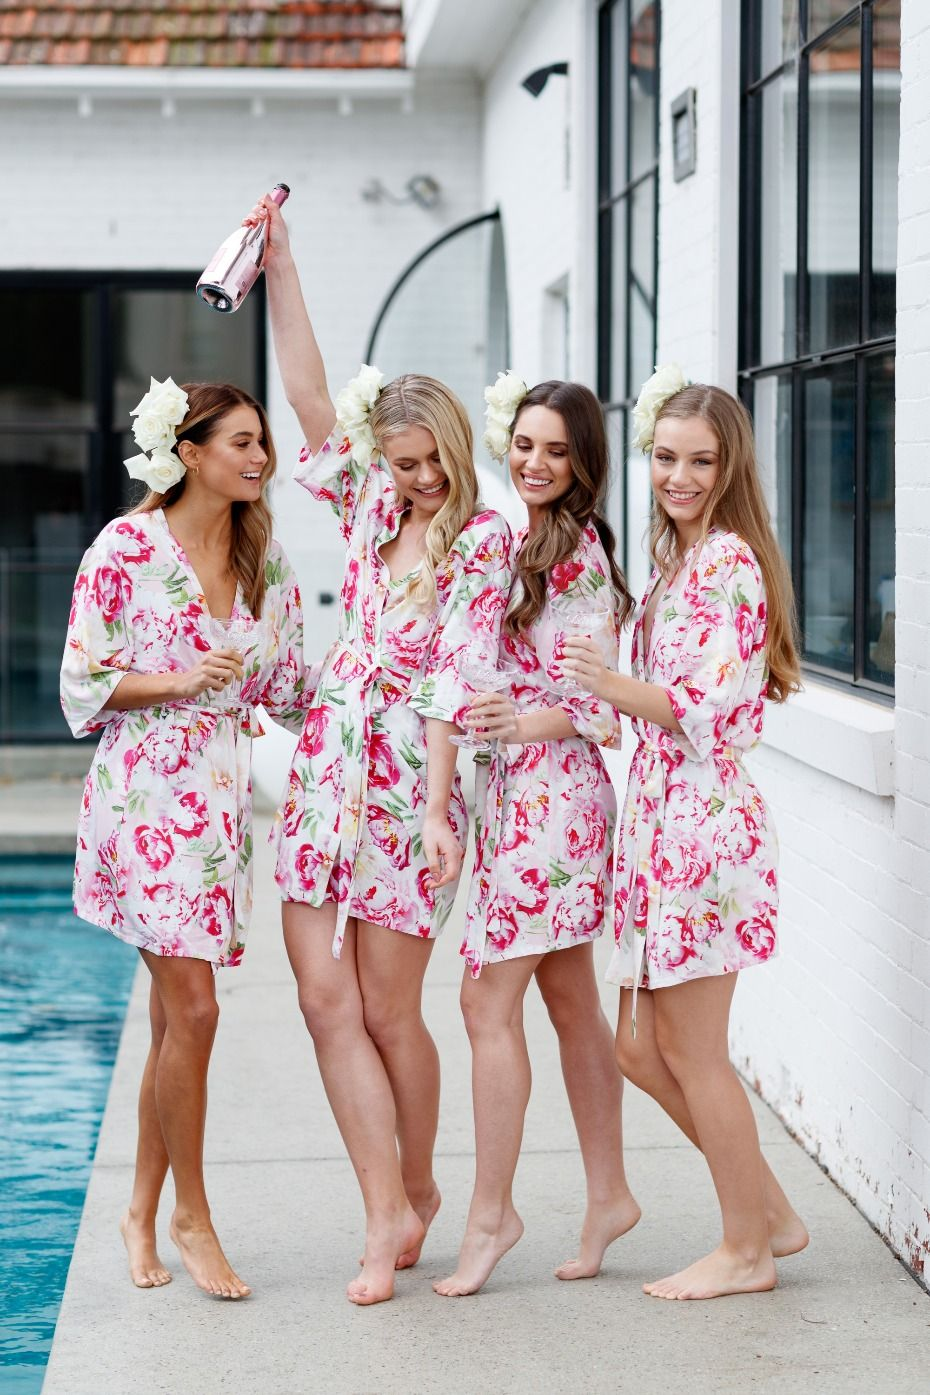 Getting Ready Robes To Match Your Wedding Style Lace Bridal Robe Bridal Party Robes Bridal Robes